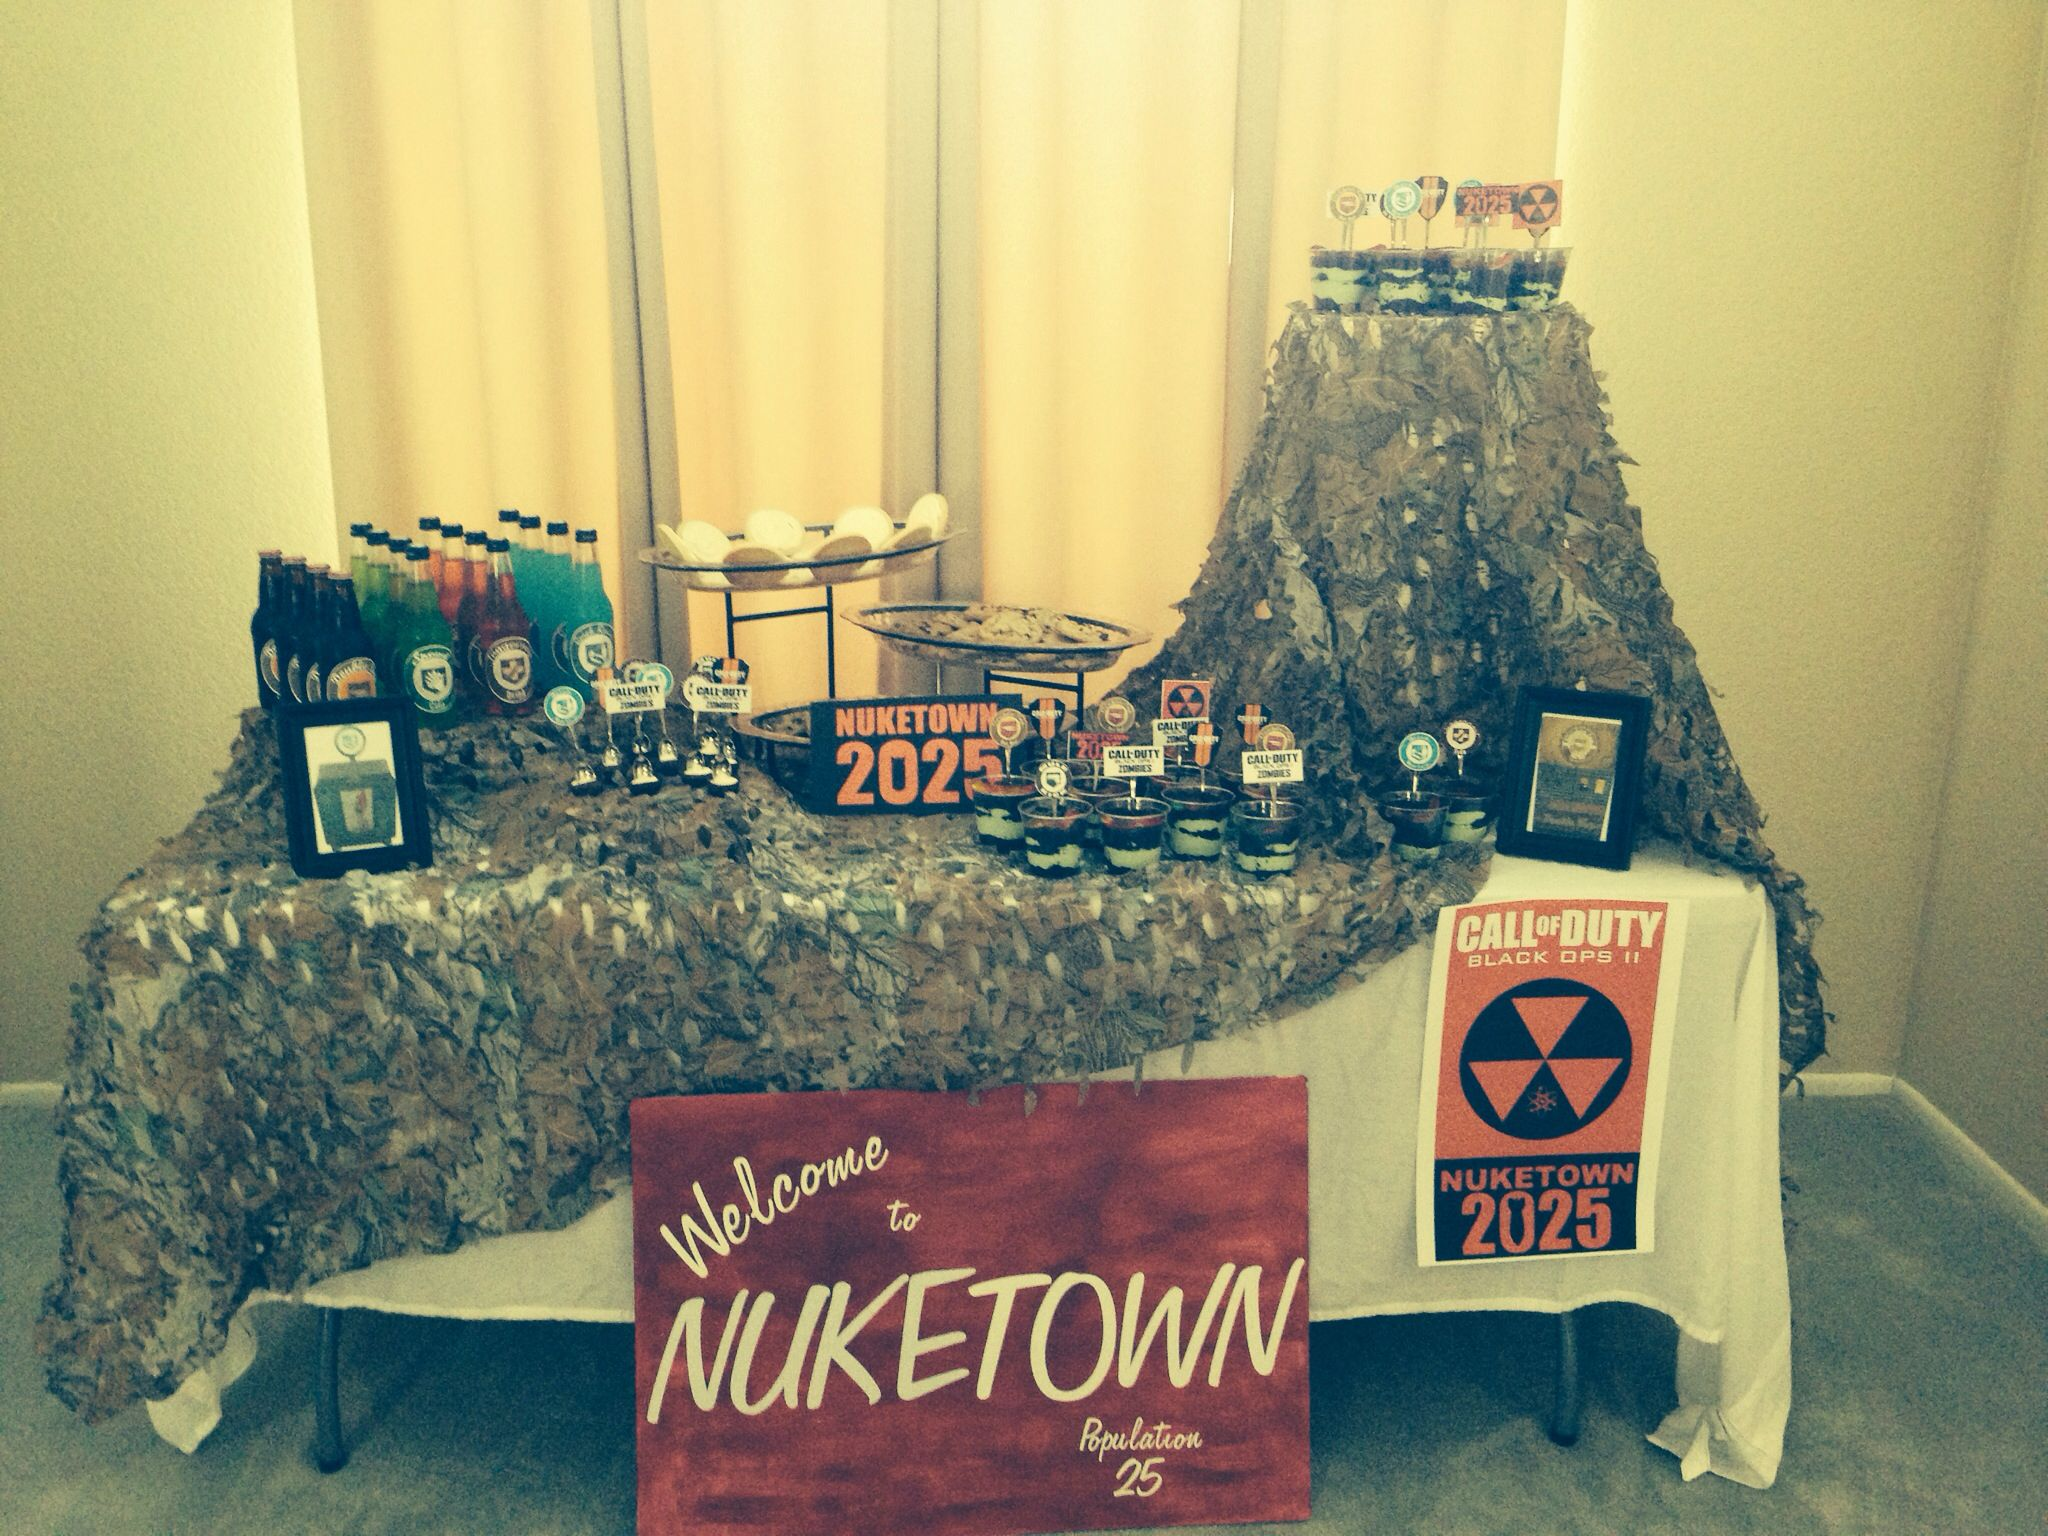 Call of duty black ops 2 zombies birthday party demetre birthday call of duty black ops 2 zombies birthday party filmwisefo Image collections